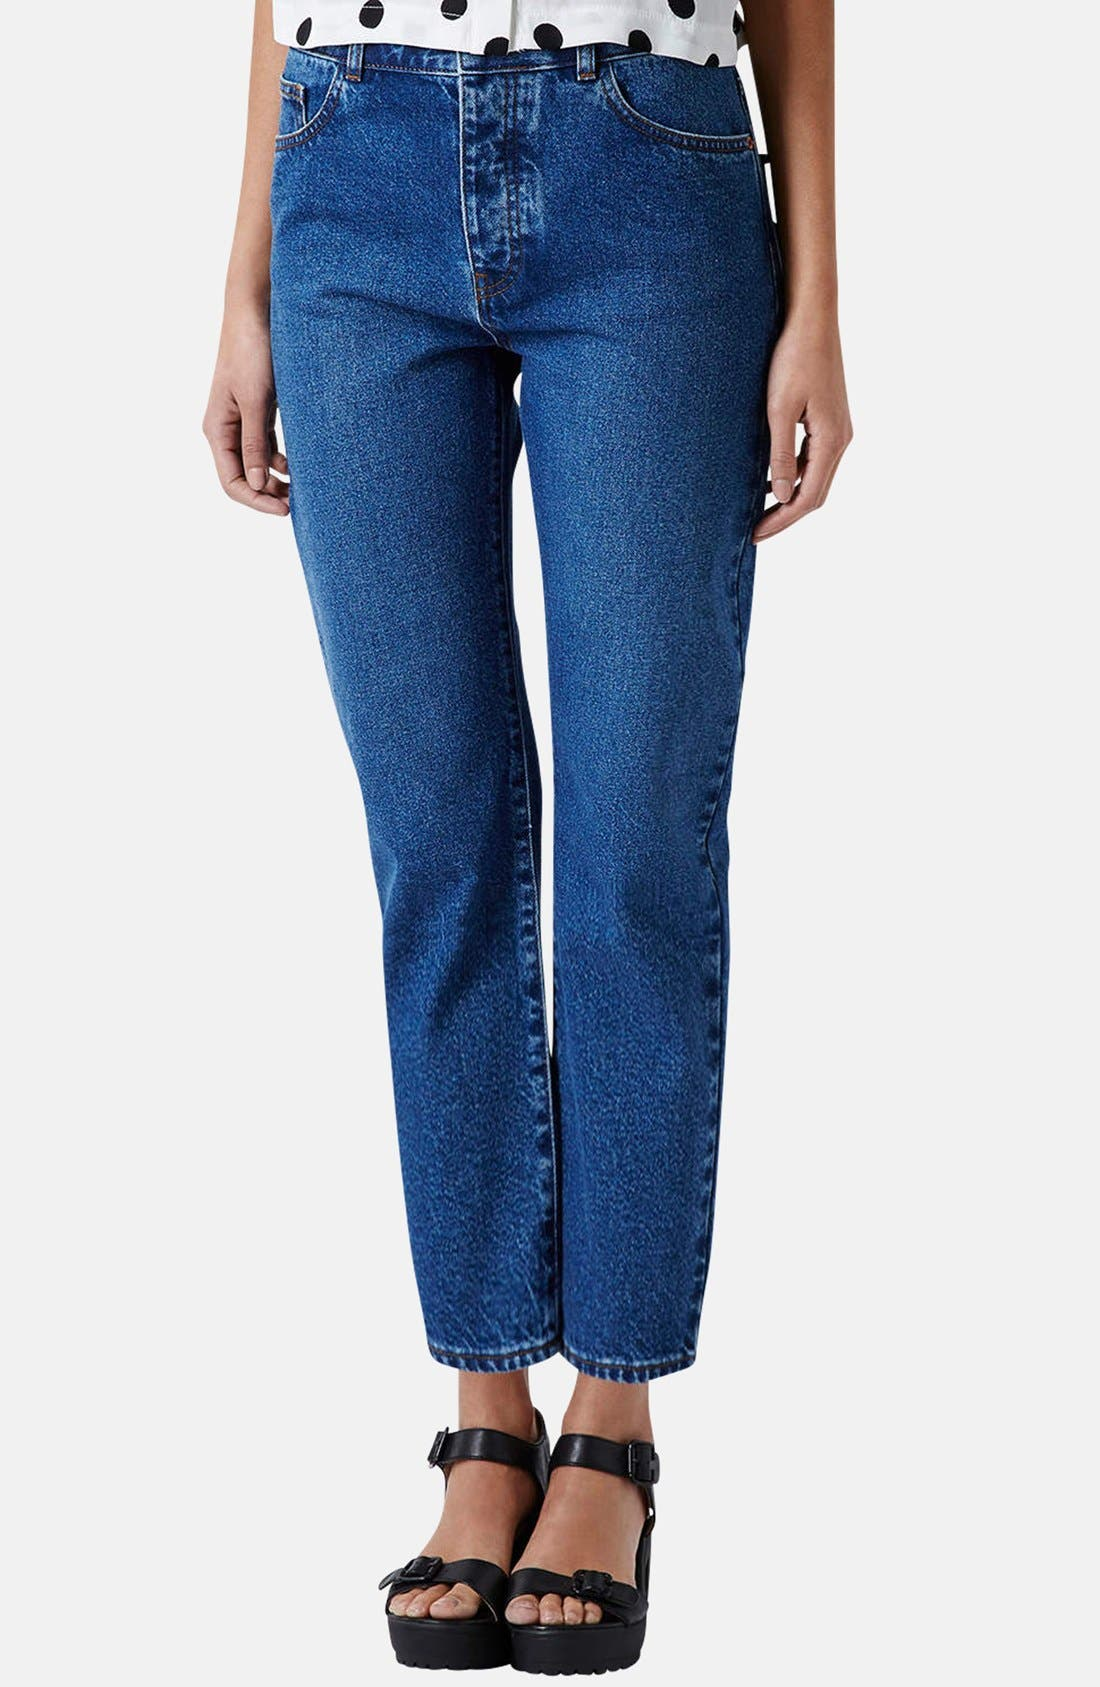 Alternate Image 1 Selected - Topshop Moto Girlfriend Jeans (Blue)